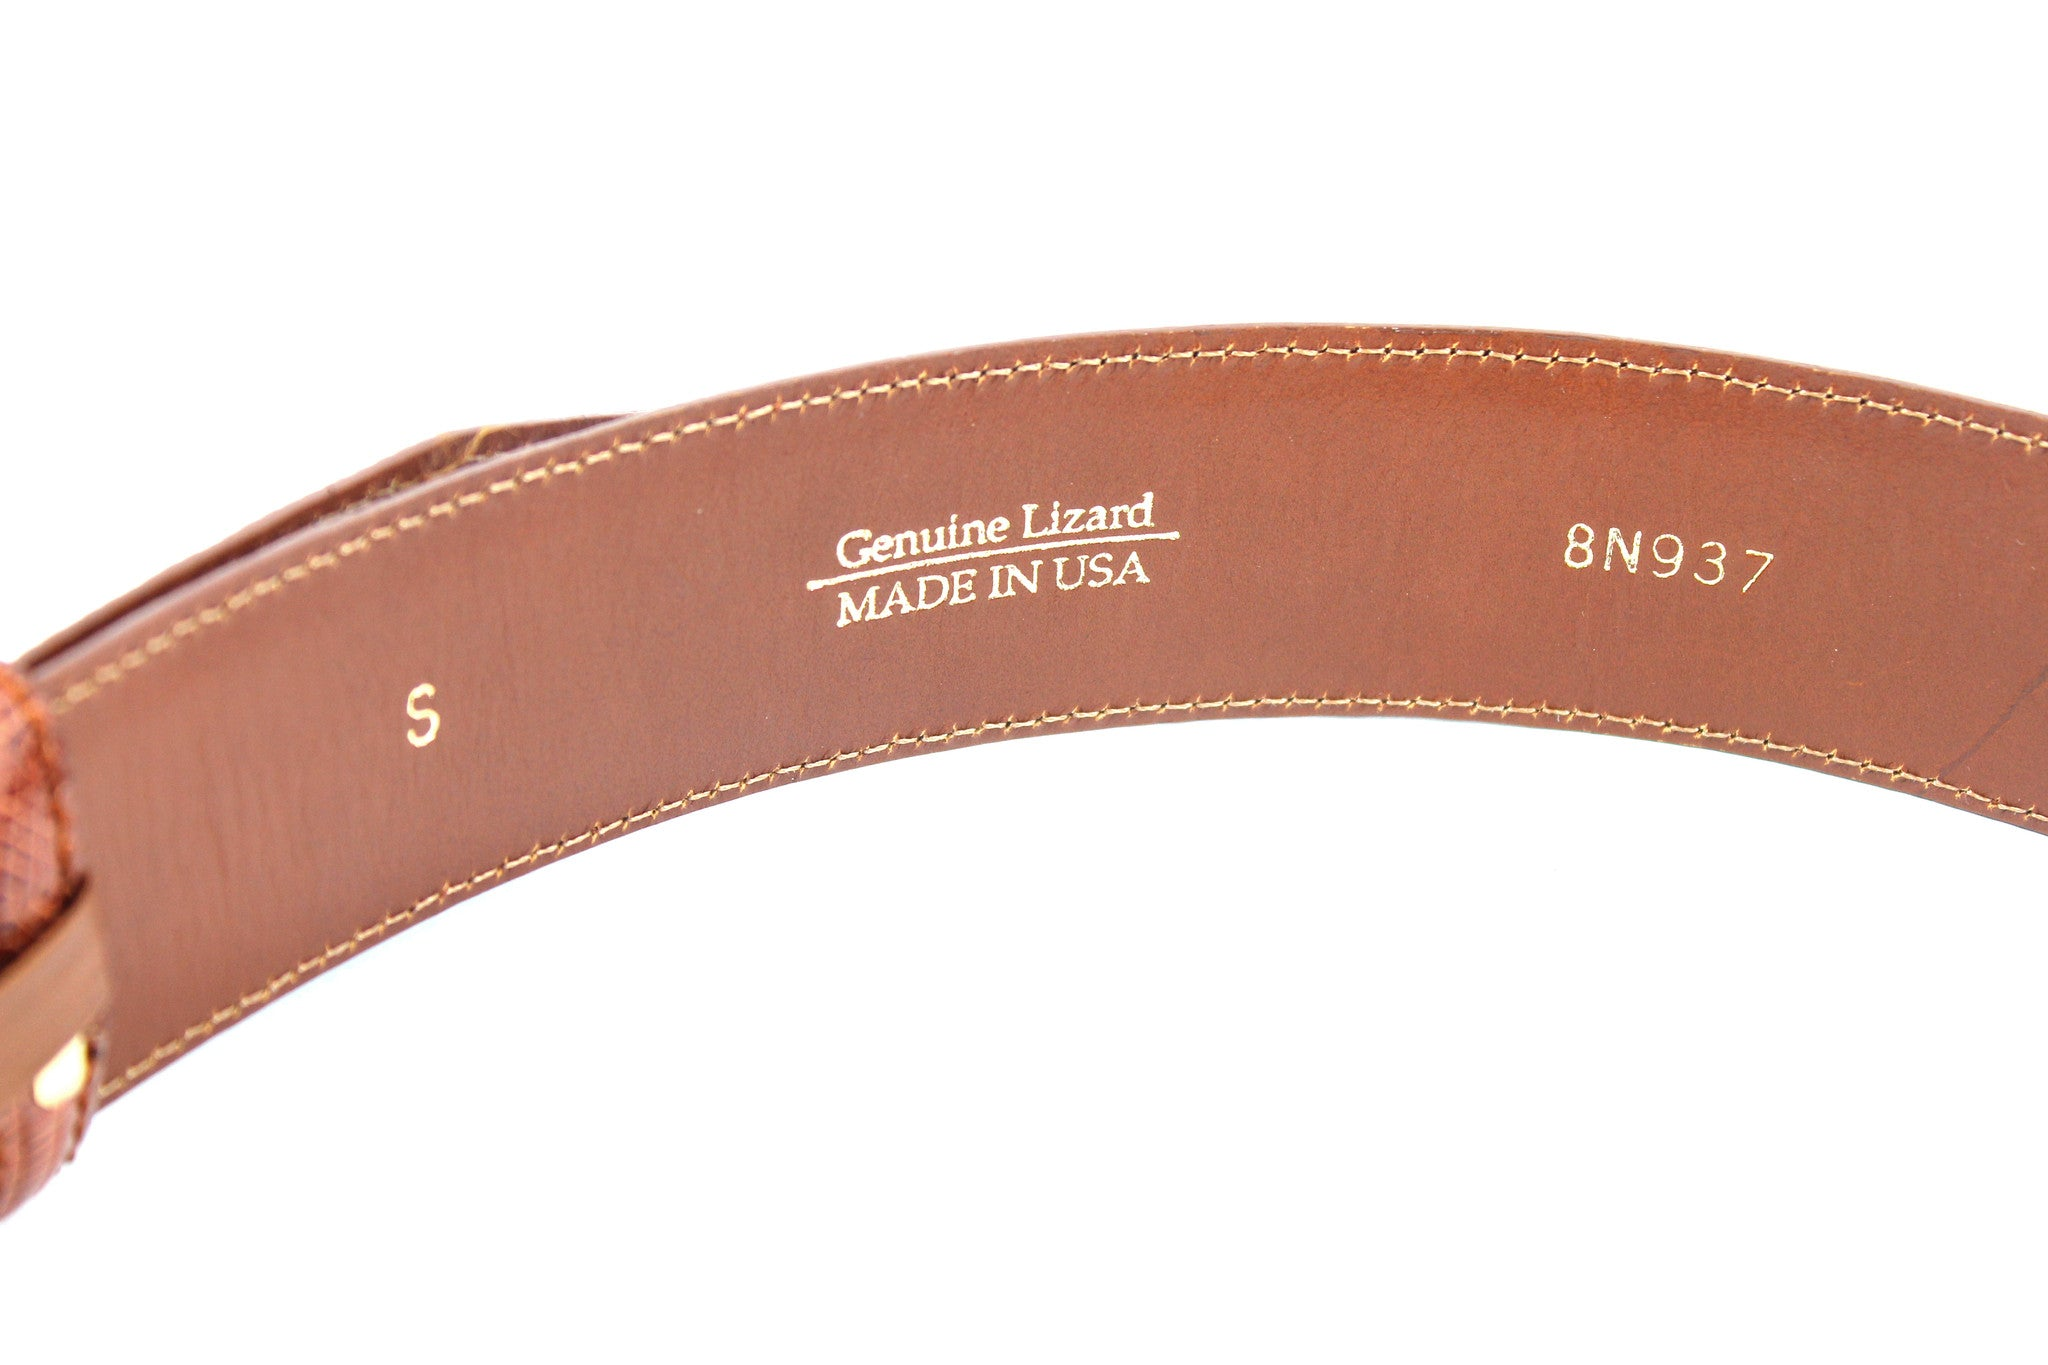 Oscar de la Renta Brown Lizard Leather Belt (Size S) - Encore Consignment - 6